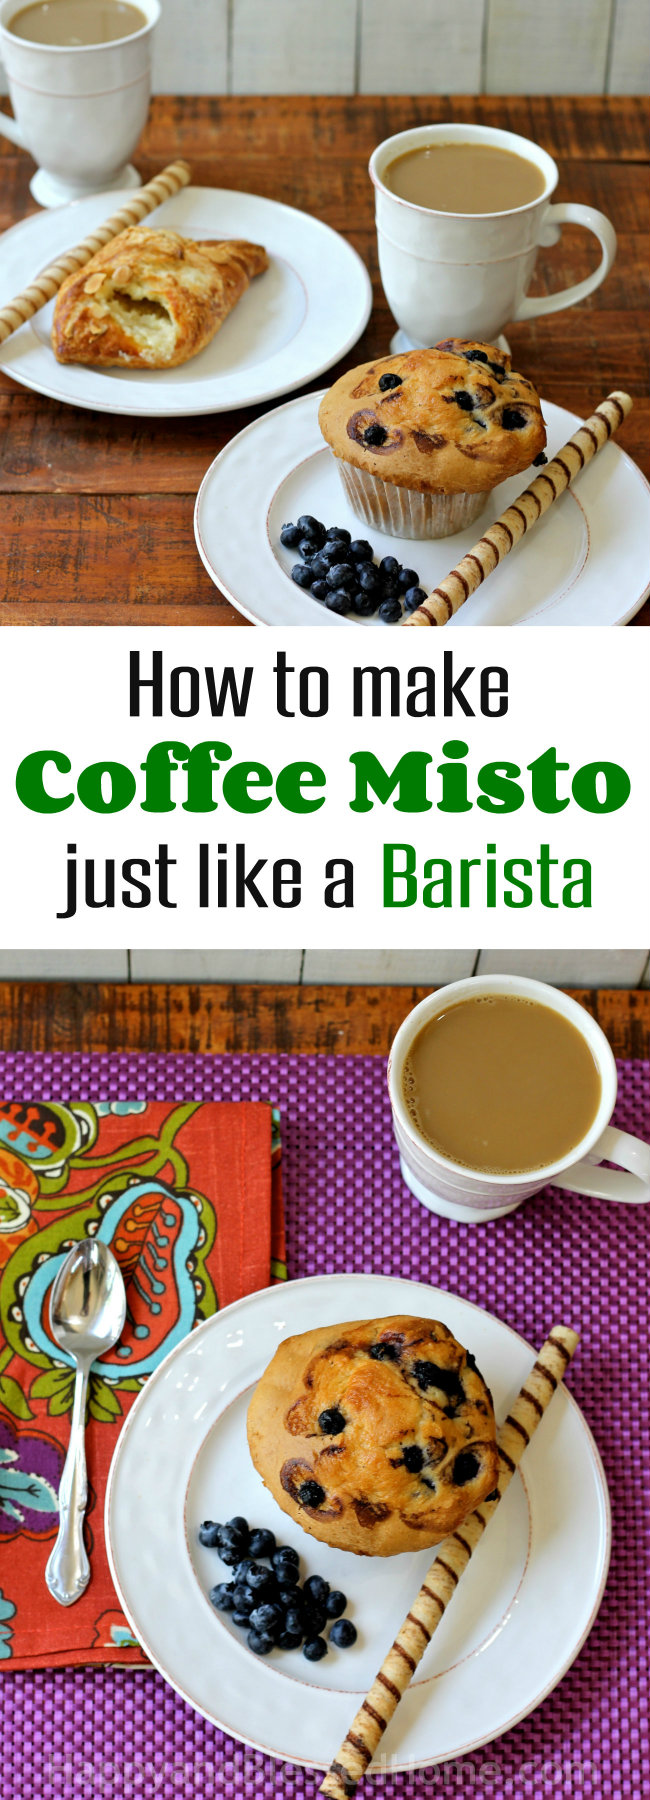 How to make coffee misto just like a barista with McCafe Premium Roast coffee and steamed milk recipe by HappyandBlessedHome